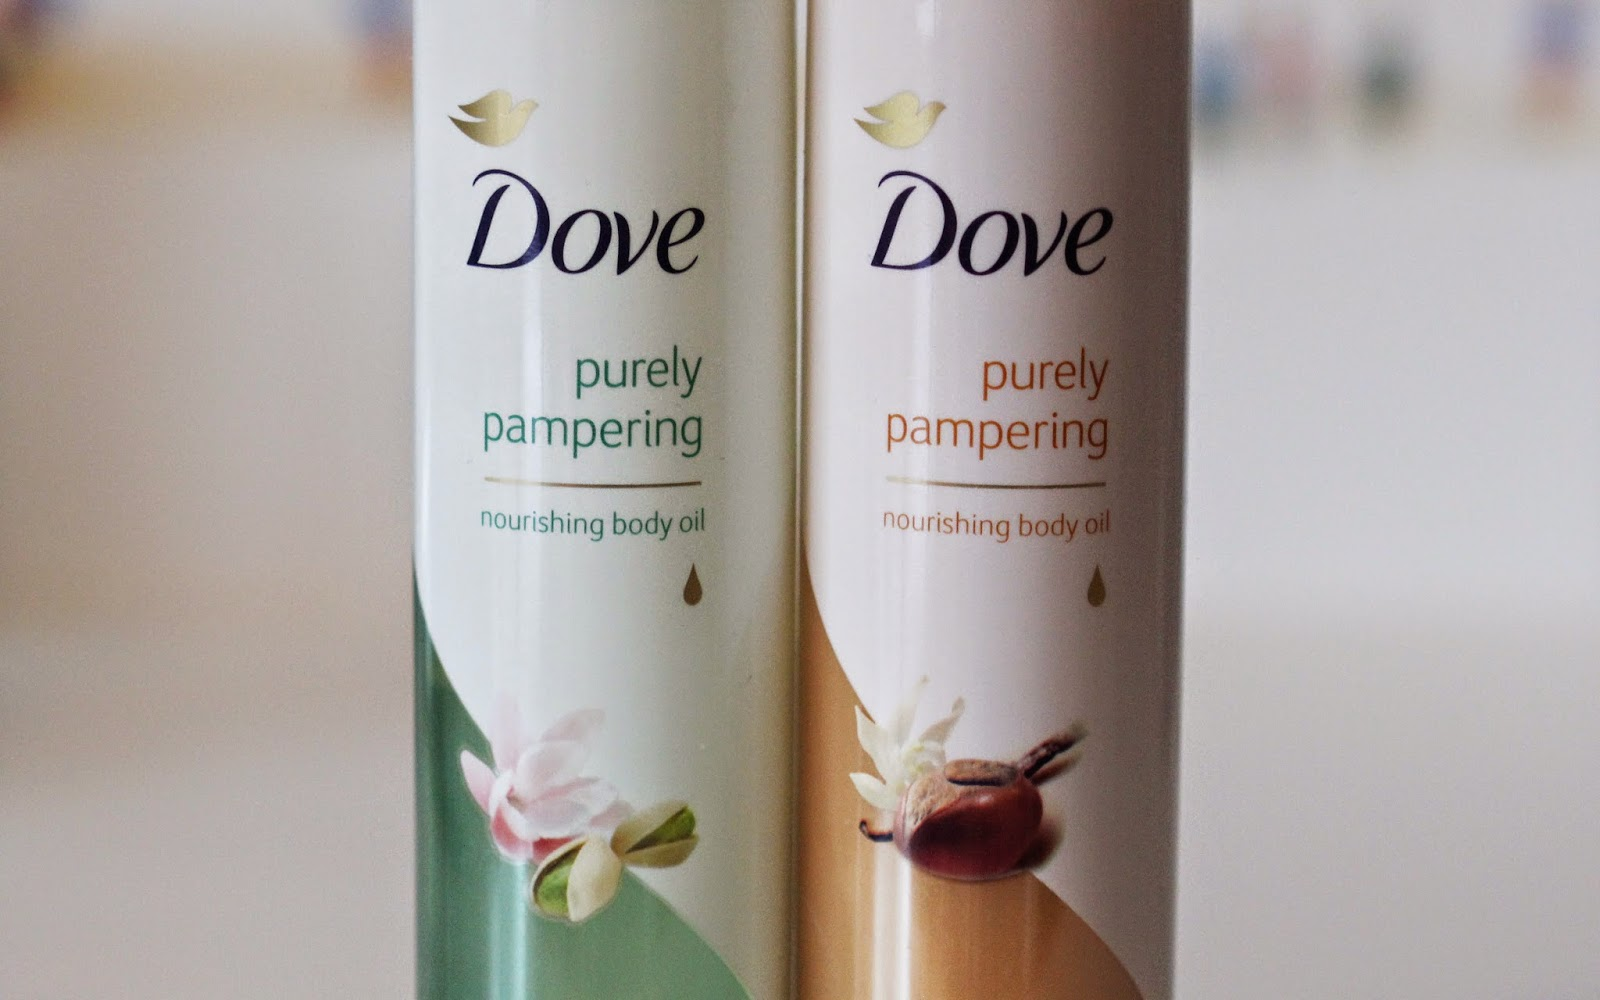 Dove Purely Pampering Nourishing Body Oil